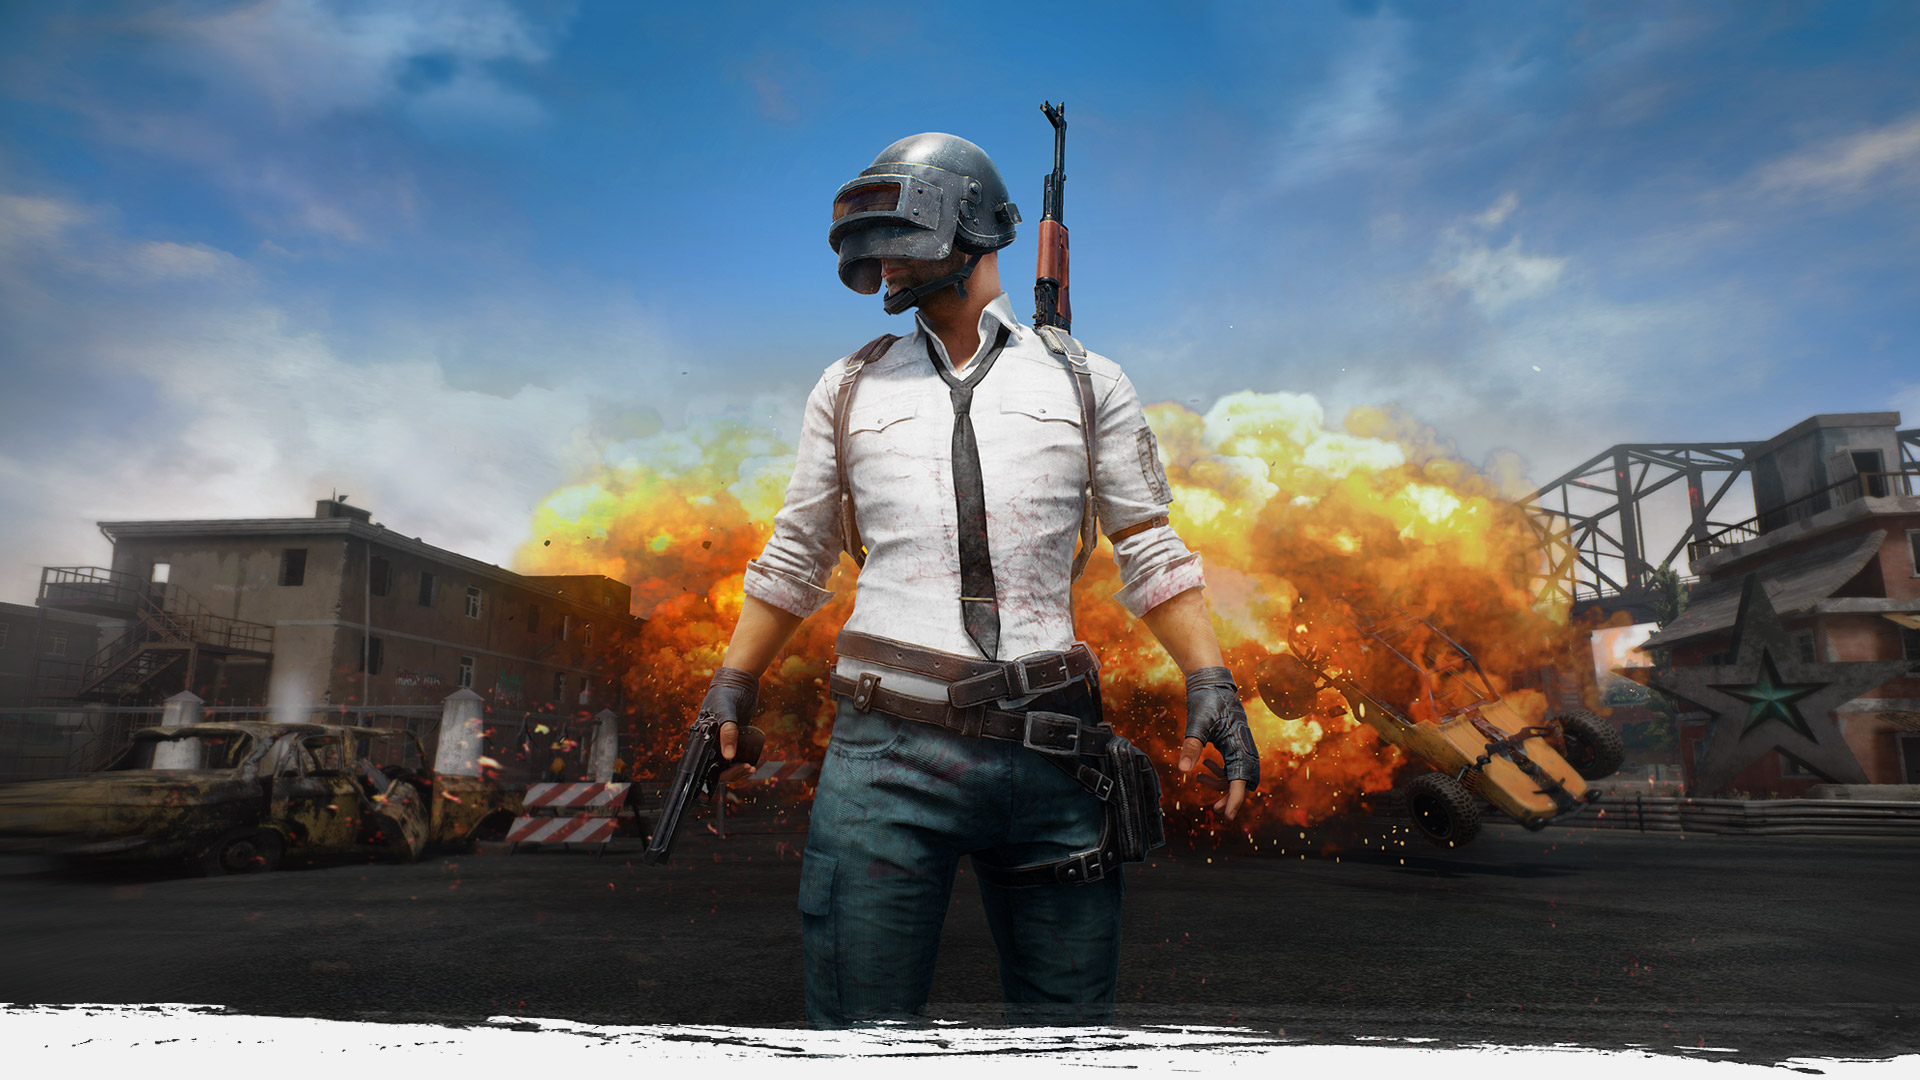 New PlayerUnknown's Battlegrounds Game Announced that May Not be a Battle Royale